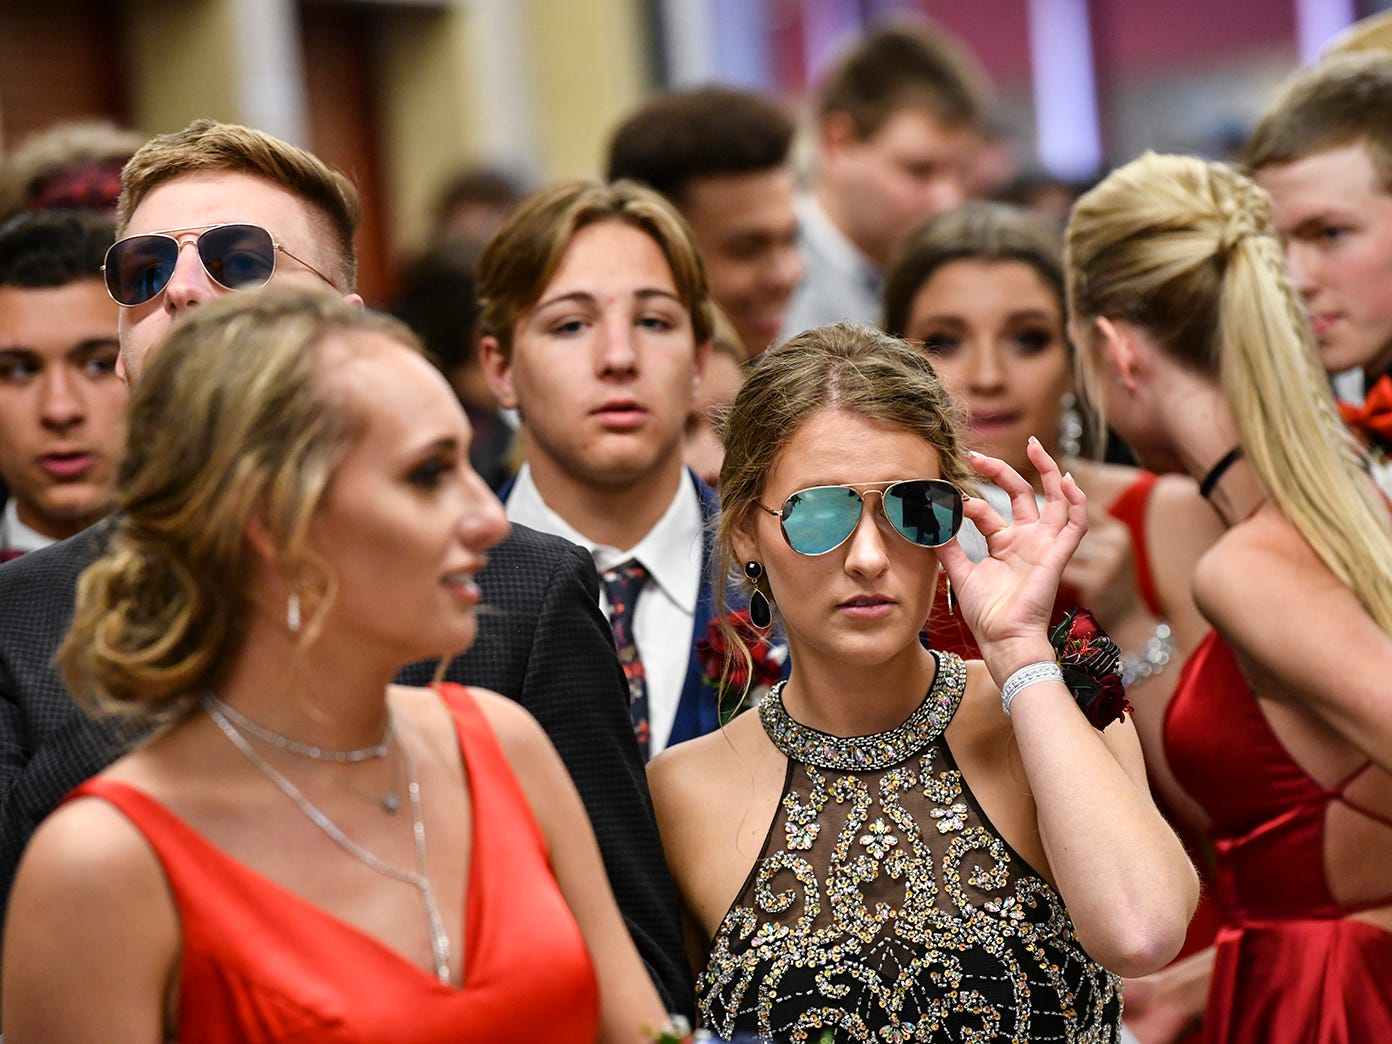 Tristan Lewellyn gets ready to take her turn at the prom grand march with her date Brock Leither Saturday, April 13, at ROCORI High School in Cold Spring.